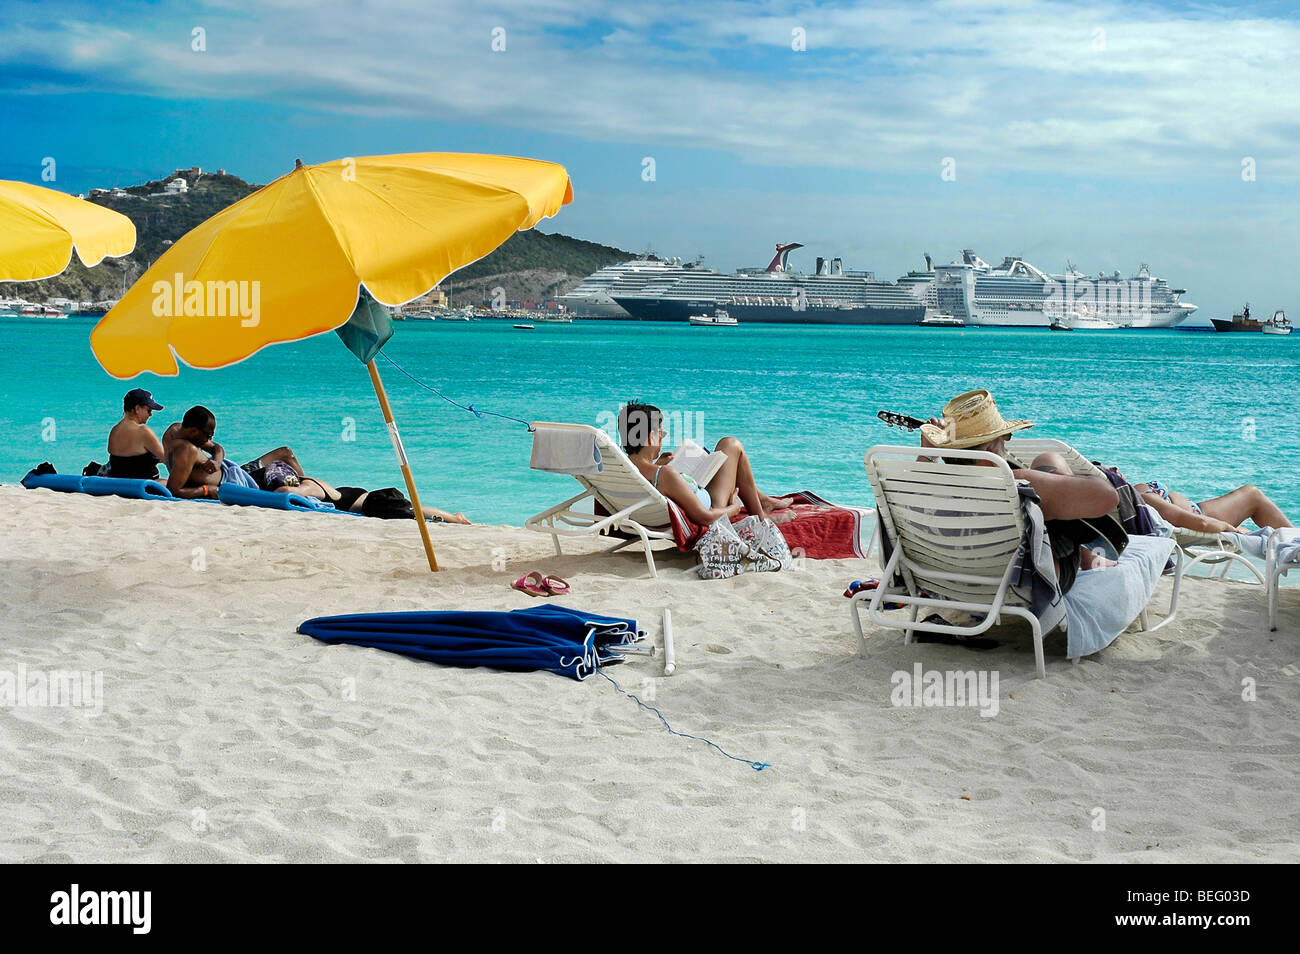 People Relaxing On The Sandy Beach Of Philipsburg St Martin Netherlands Antilles Cruise Ships Docked In Background